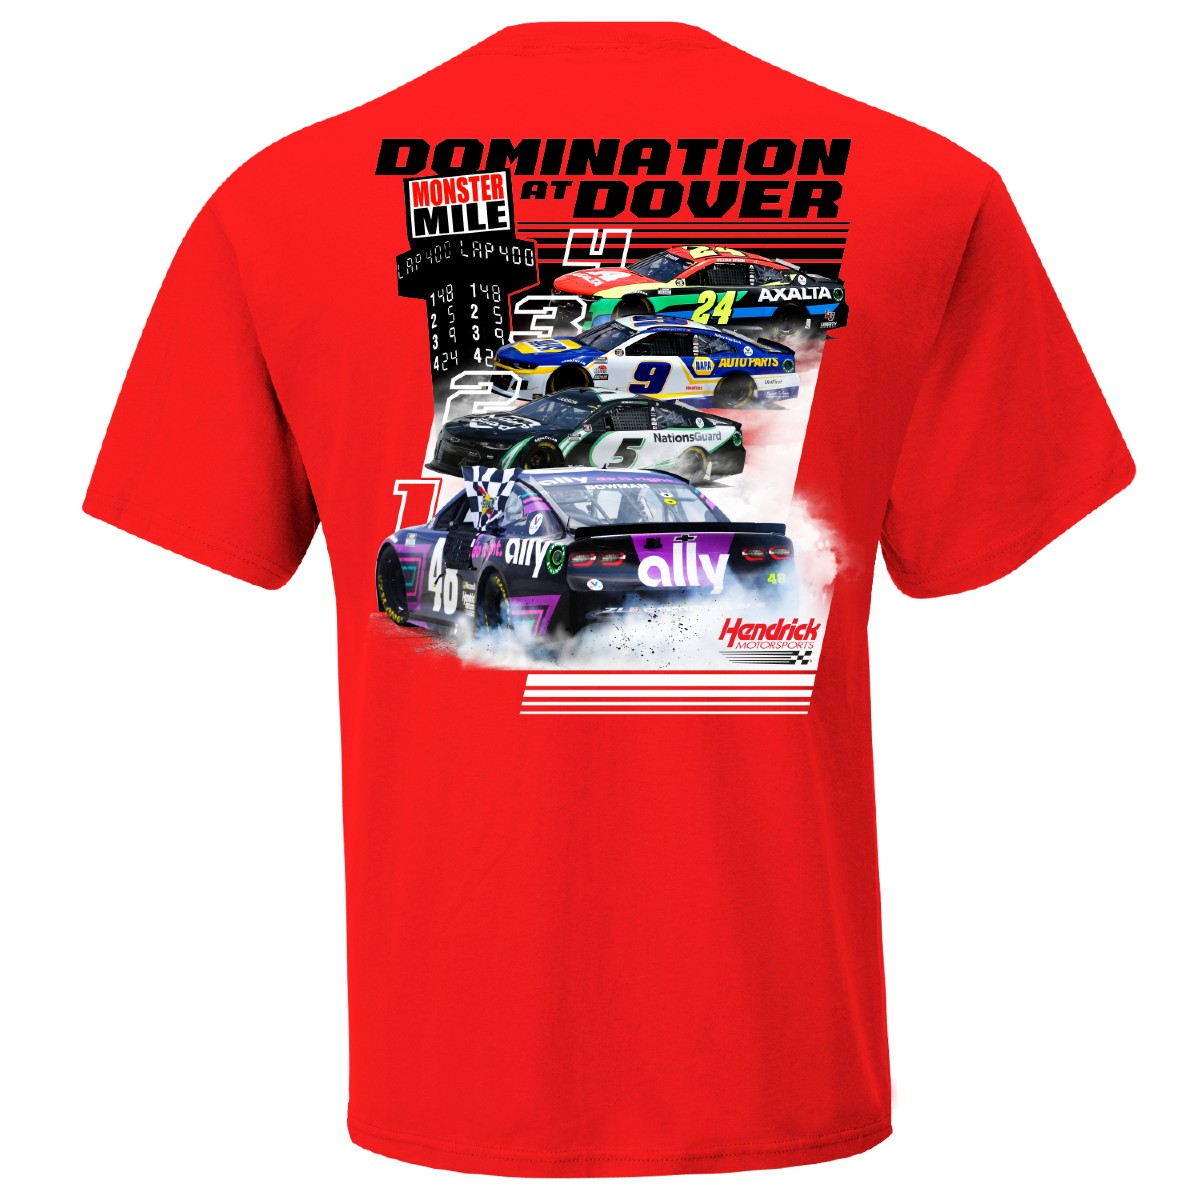 Hendrick Motorsports Top 4 at Dover Graphic Tee